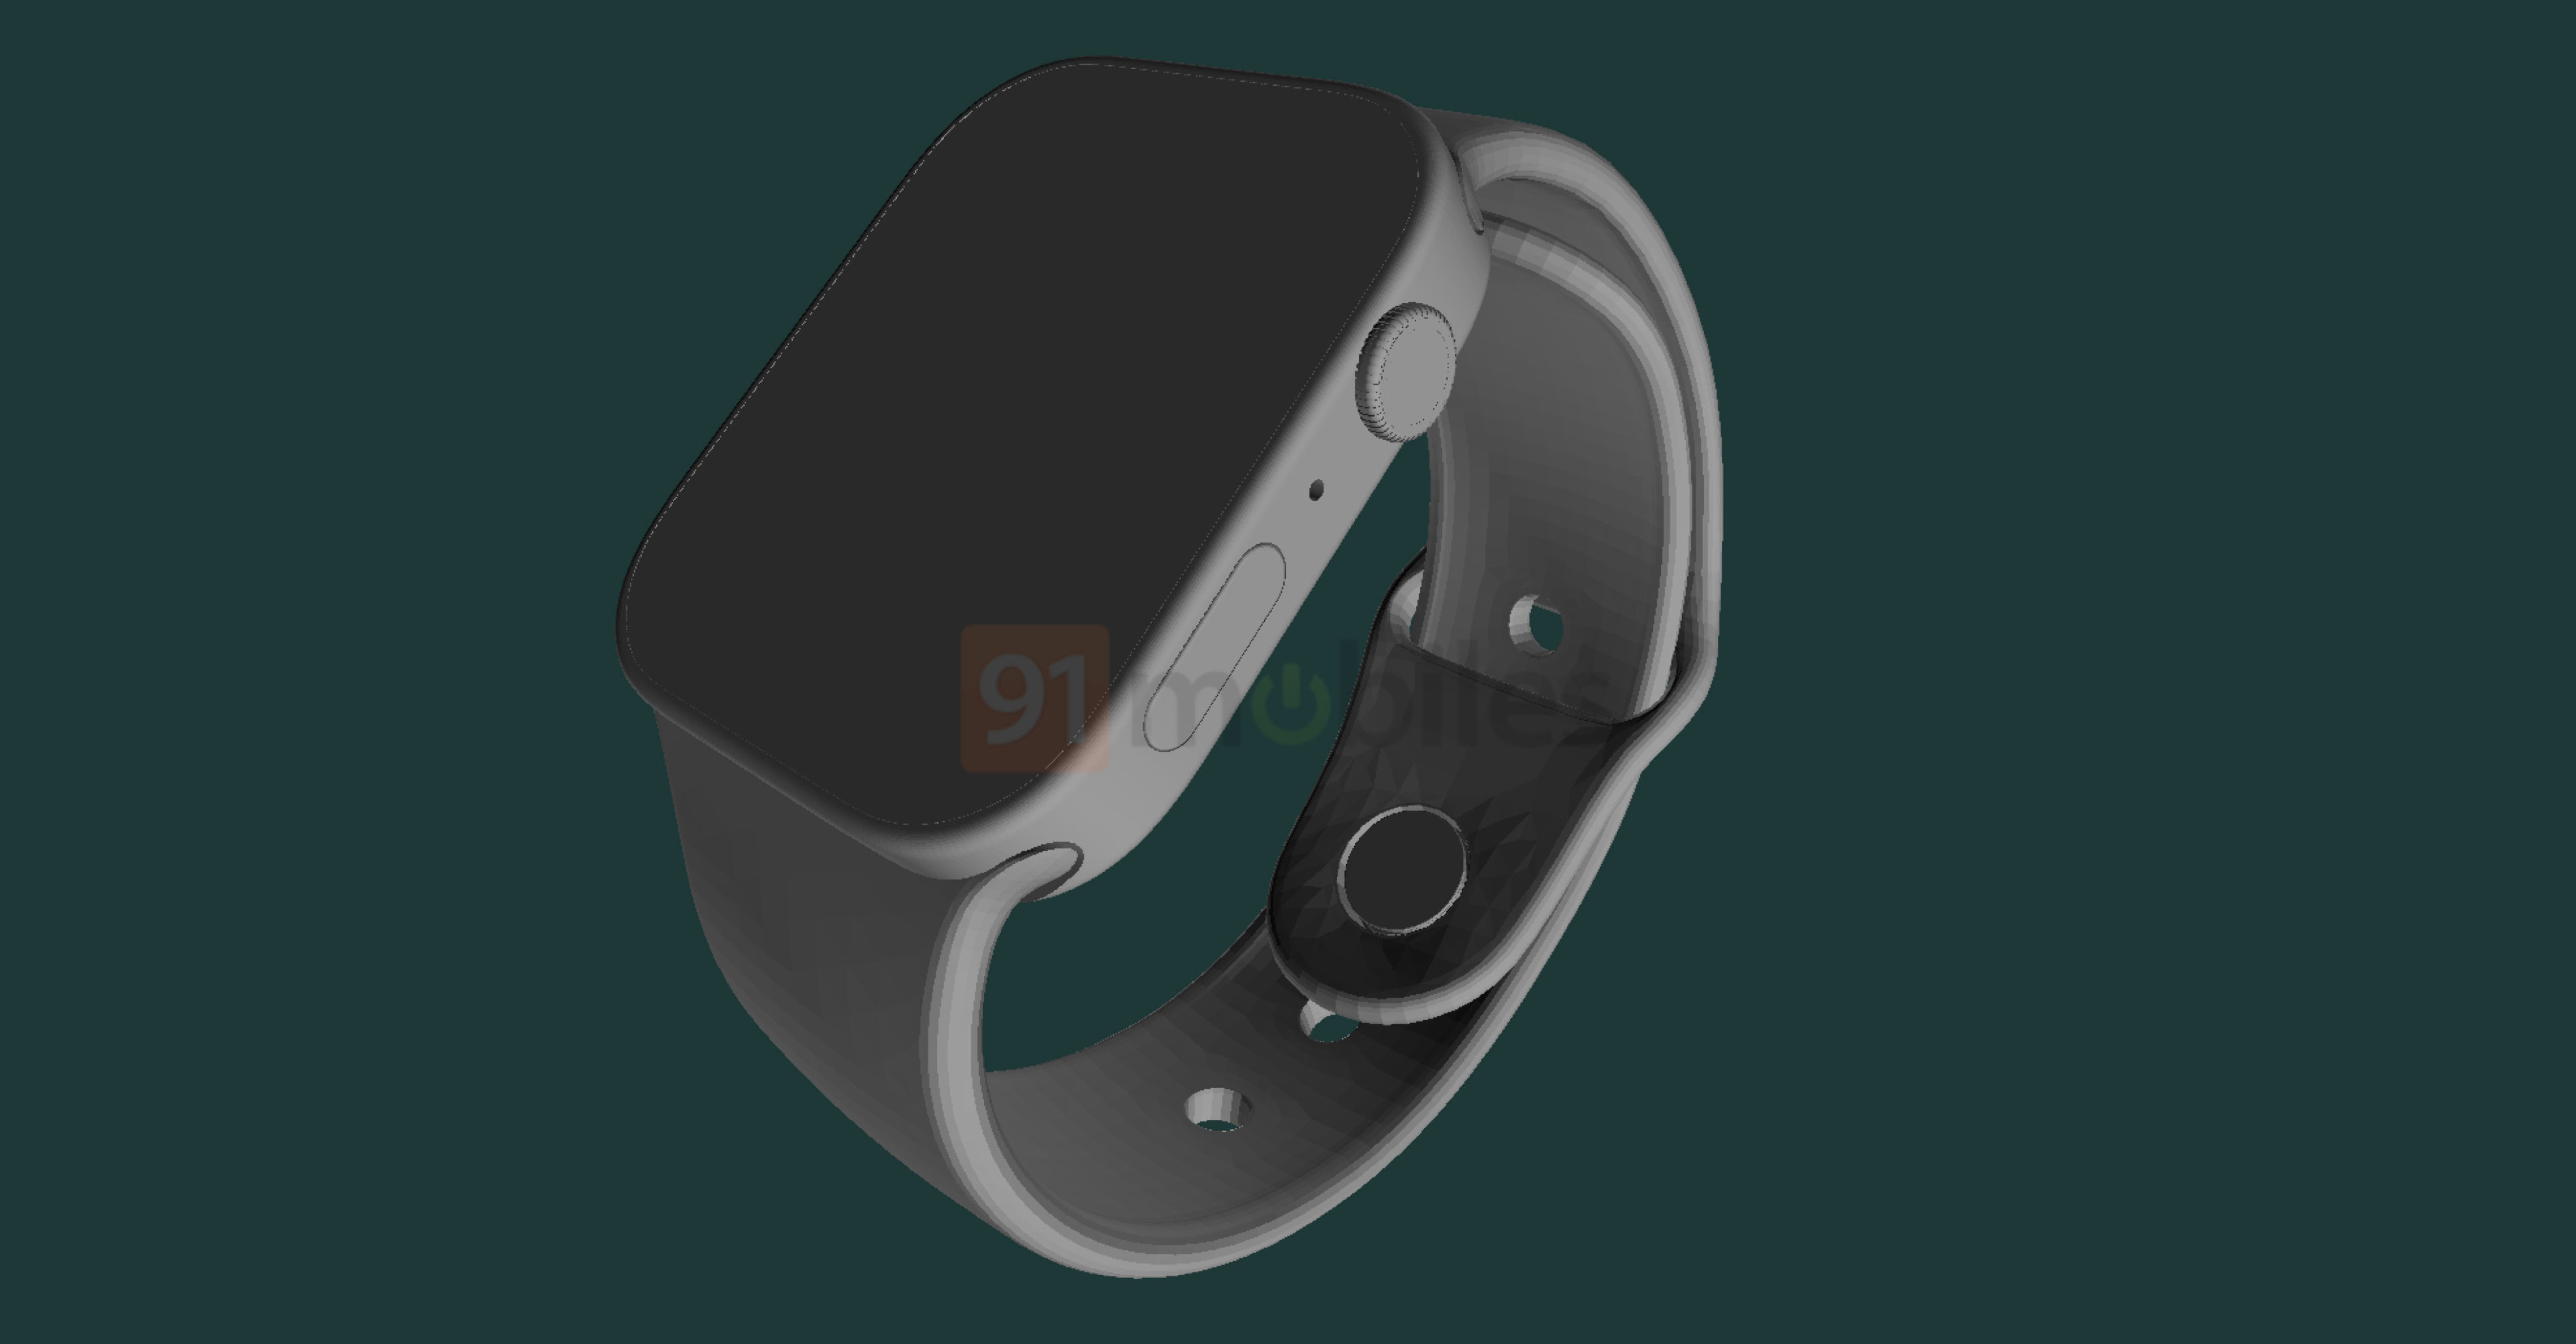 A CAD-based render of Apple Watch Series 7 showing the right side with the Digital Crown and Side buttons